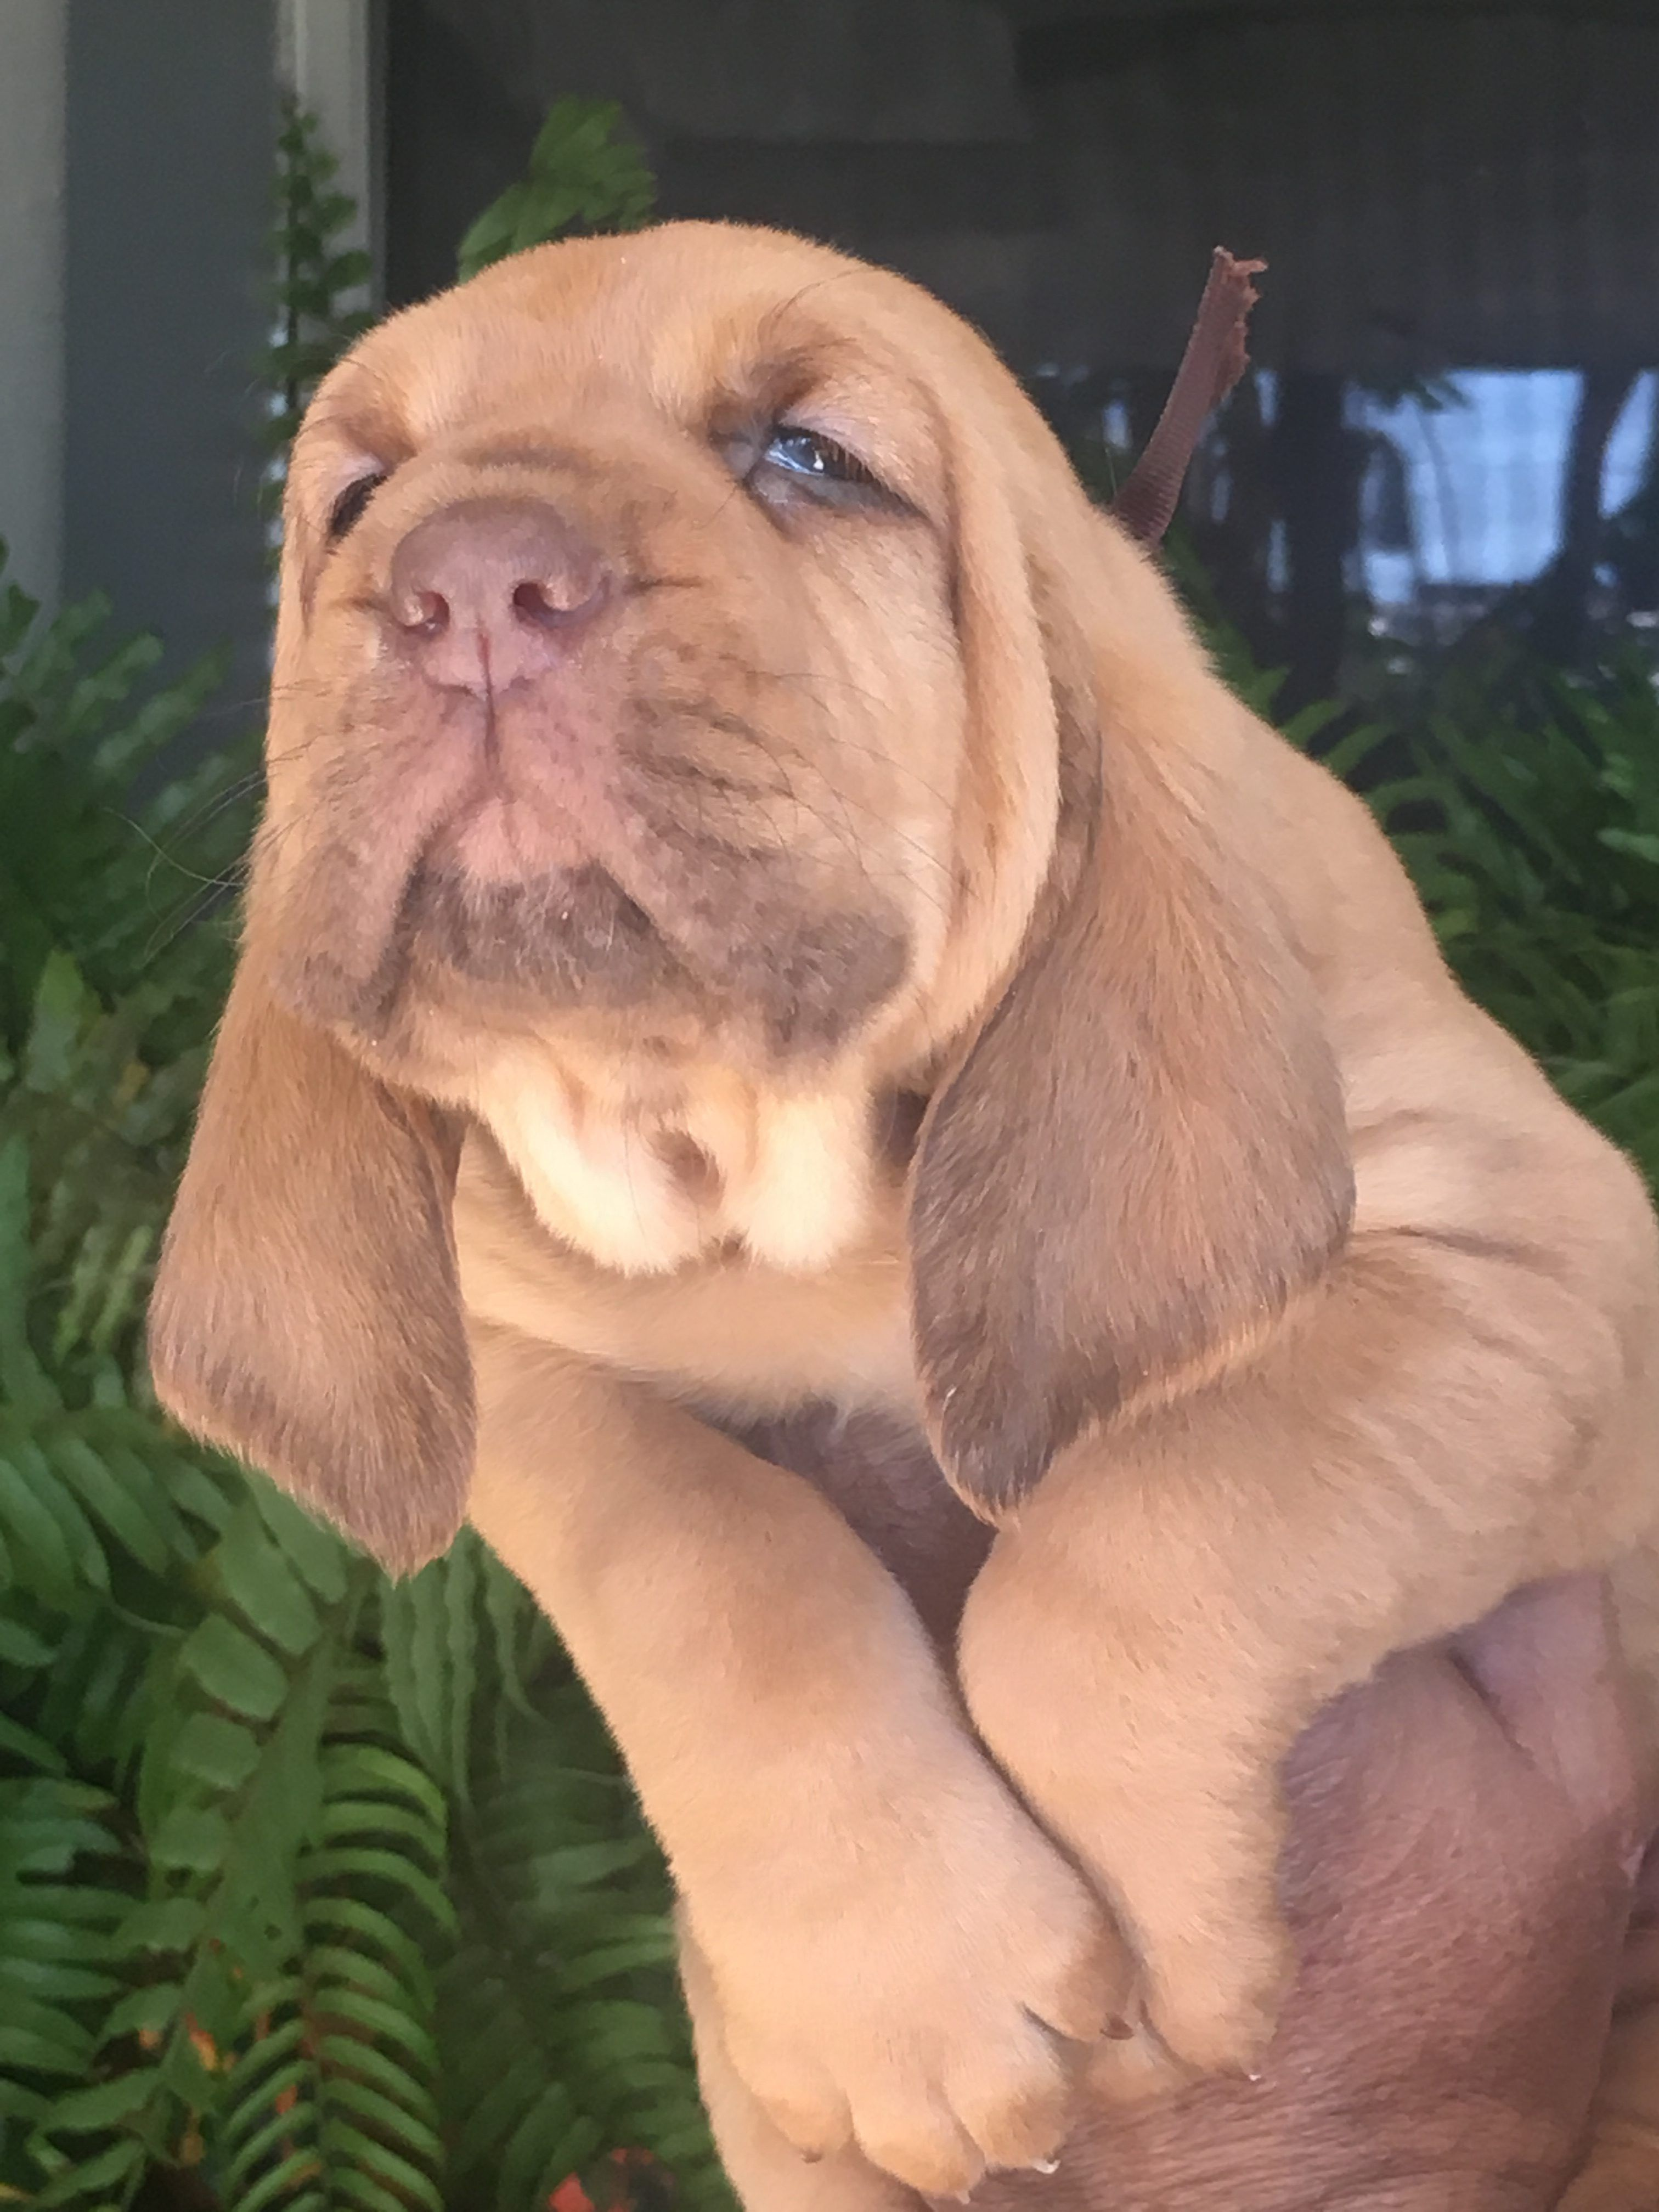 Brown An Akc Bloodhound Puppy For Sale From Houston Tx Find Cute Bloodhound Puppies And Responsible Bloo Bloodhound Puppies Puppies Labrador Puppy Training